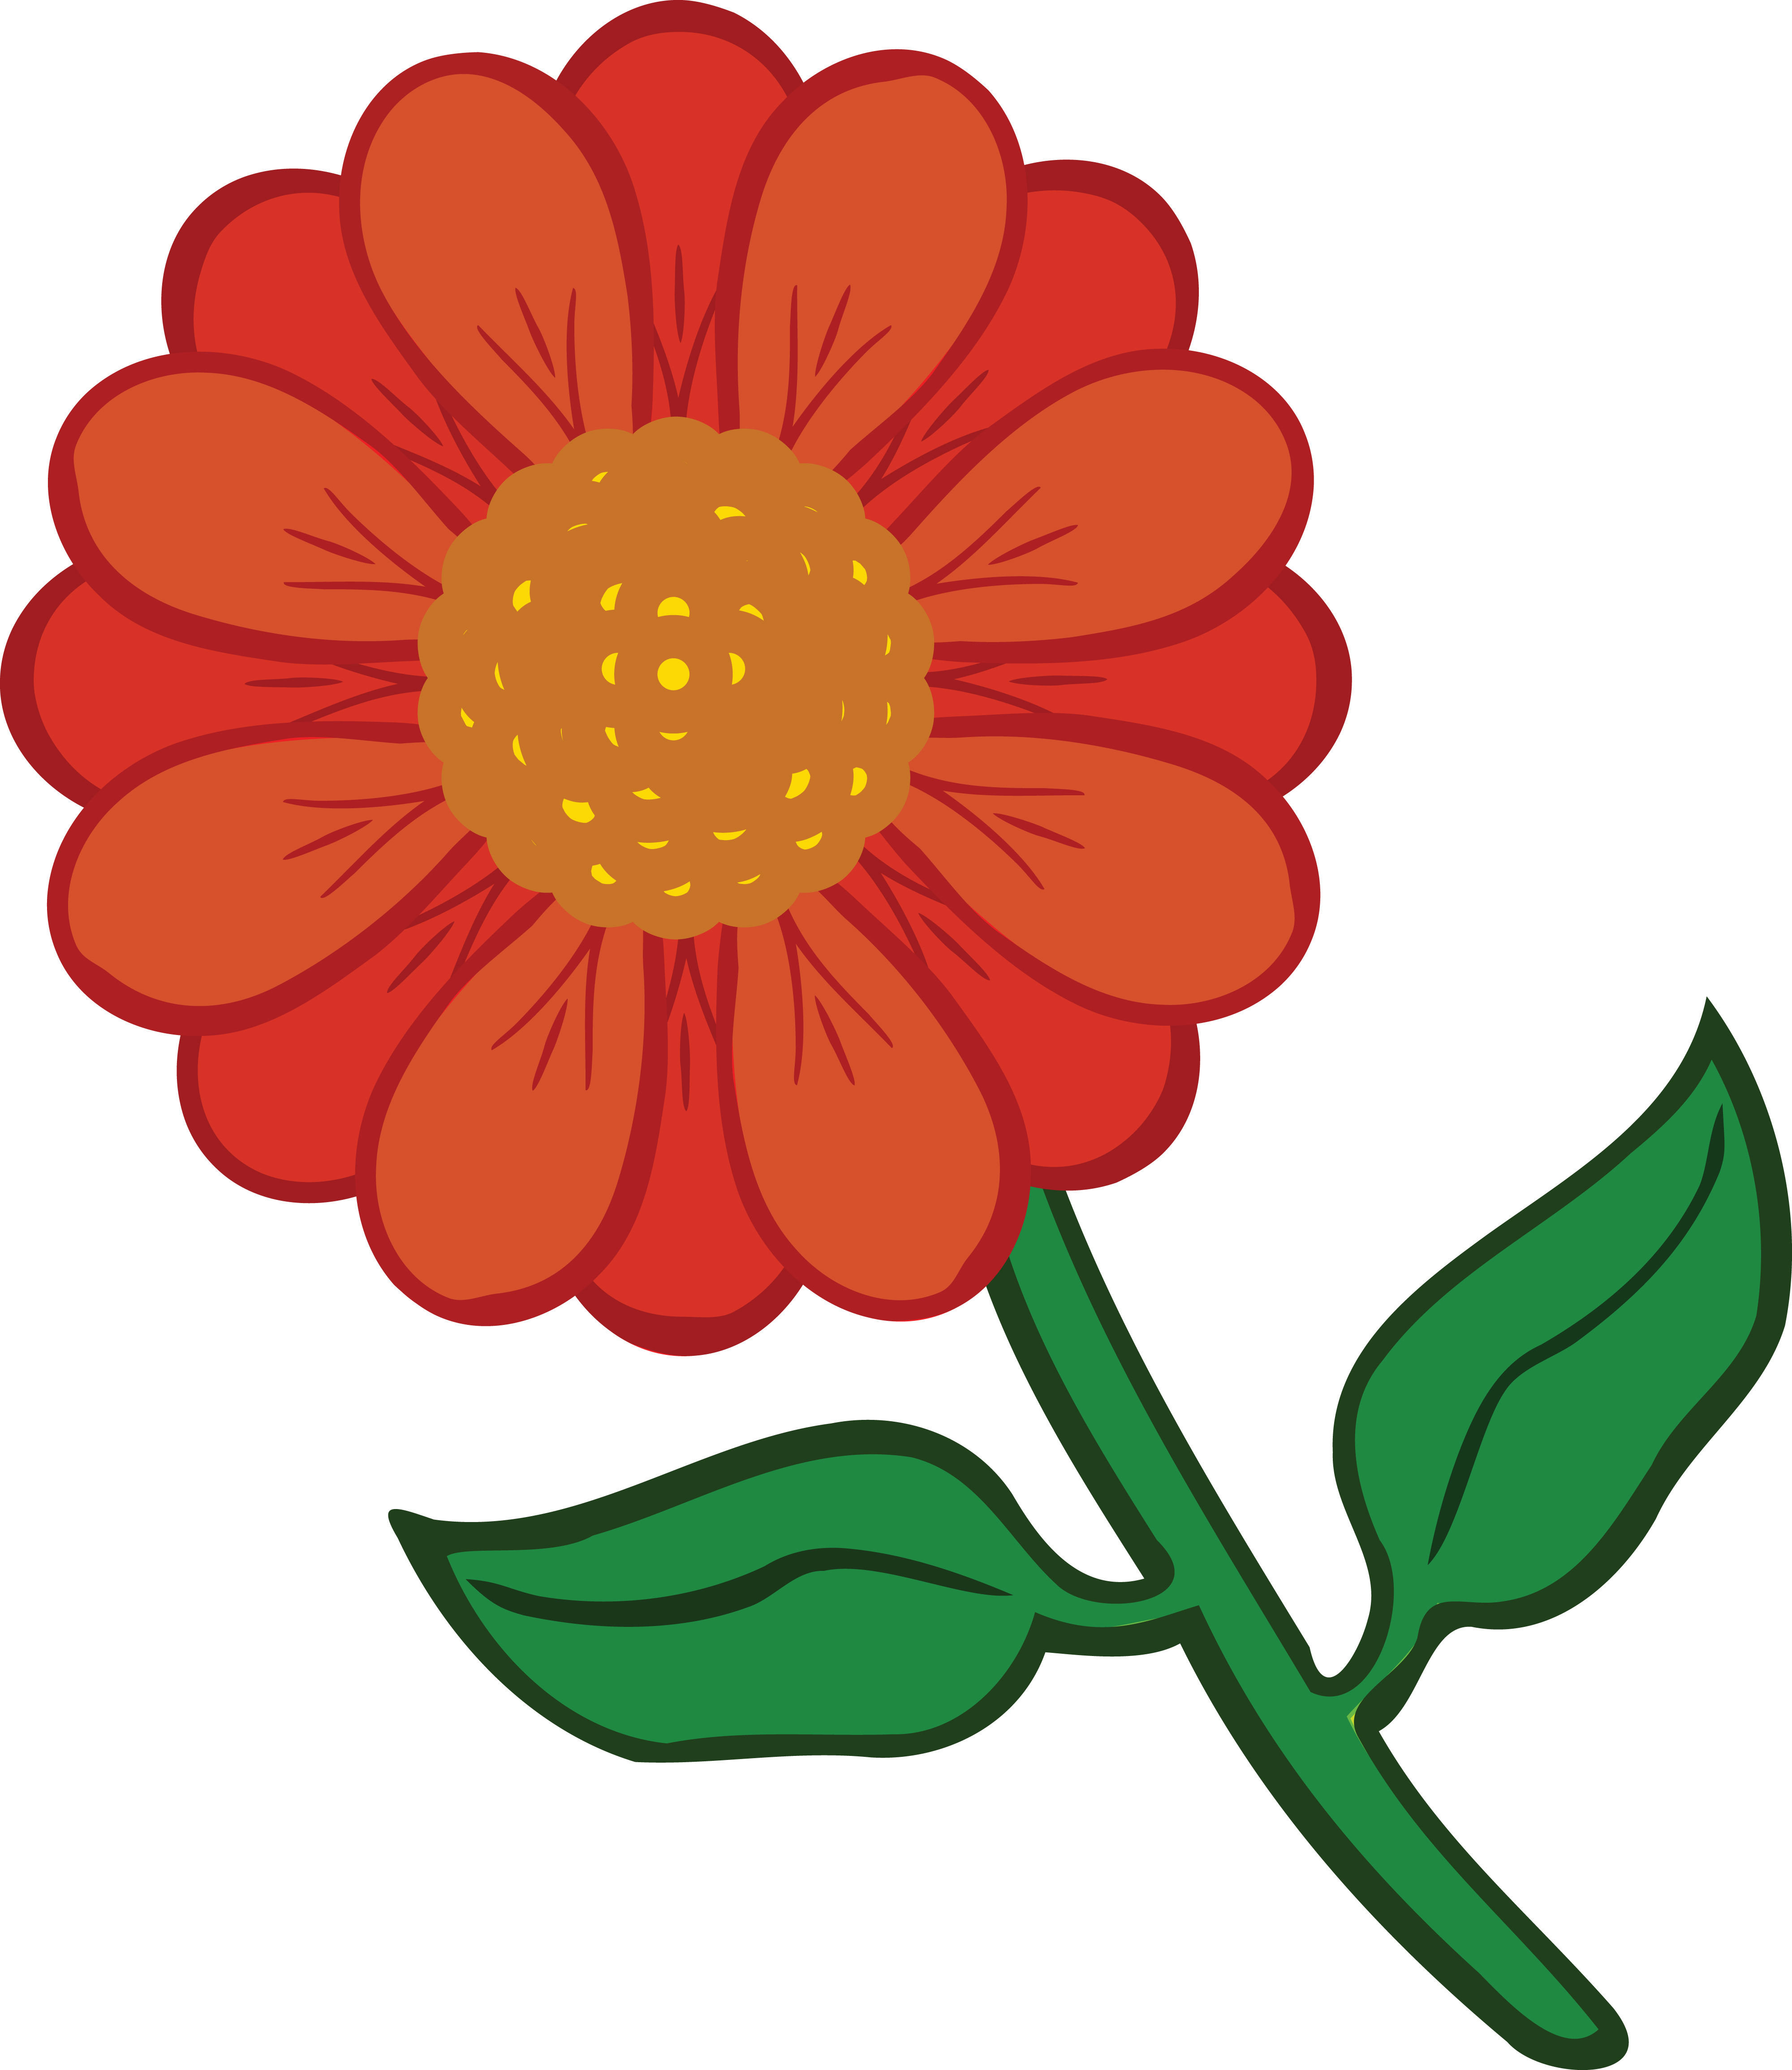 Free clipart of a daisy flower free clipart of a daisy flower 00011401 izmirmasajfo